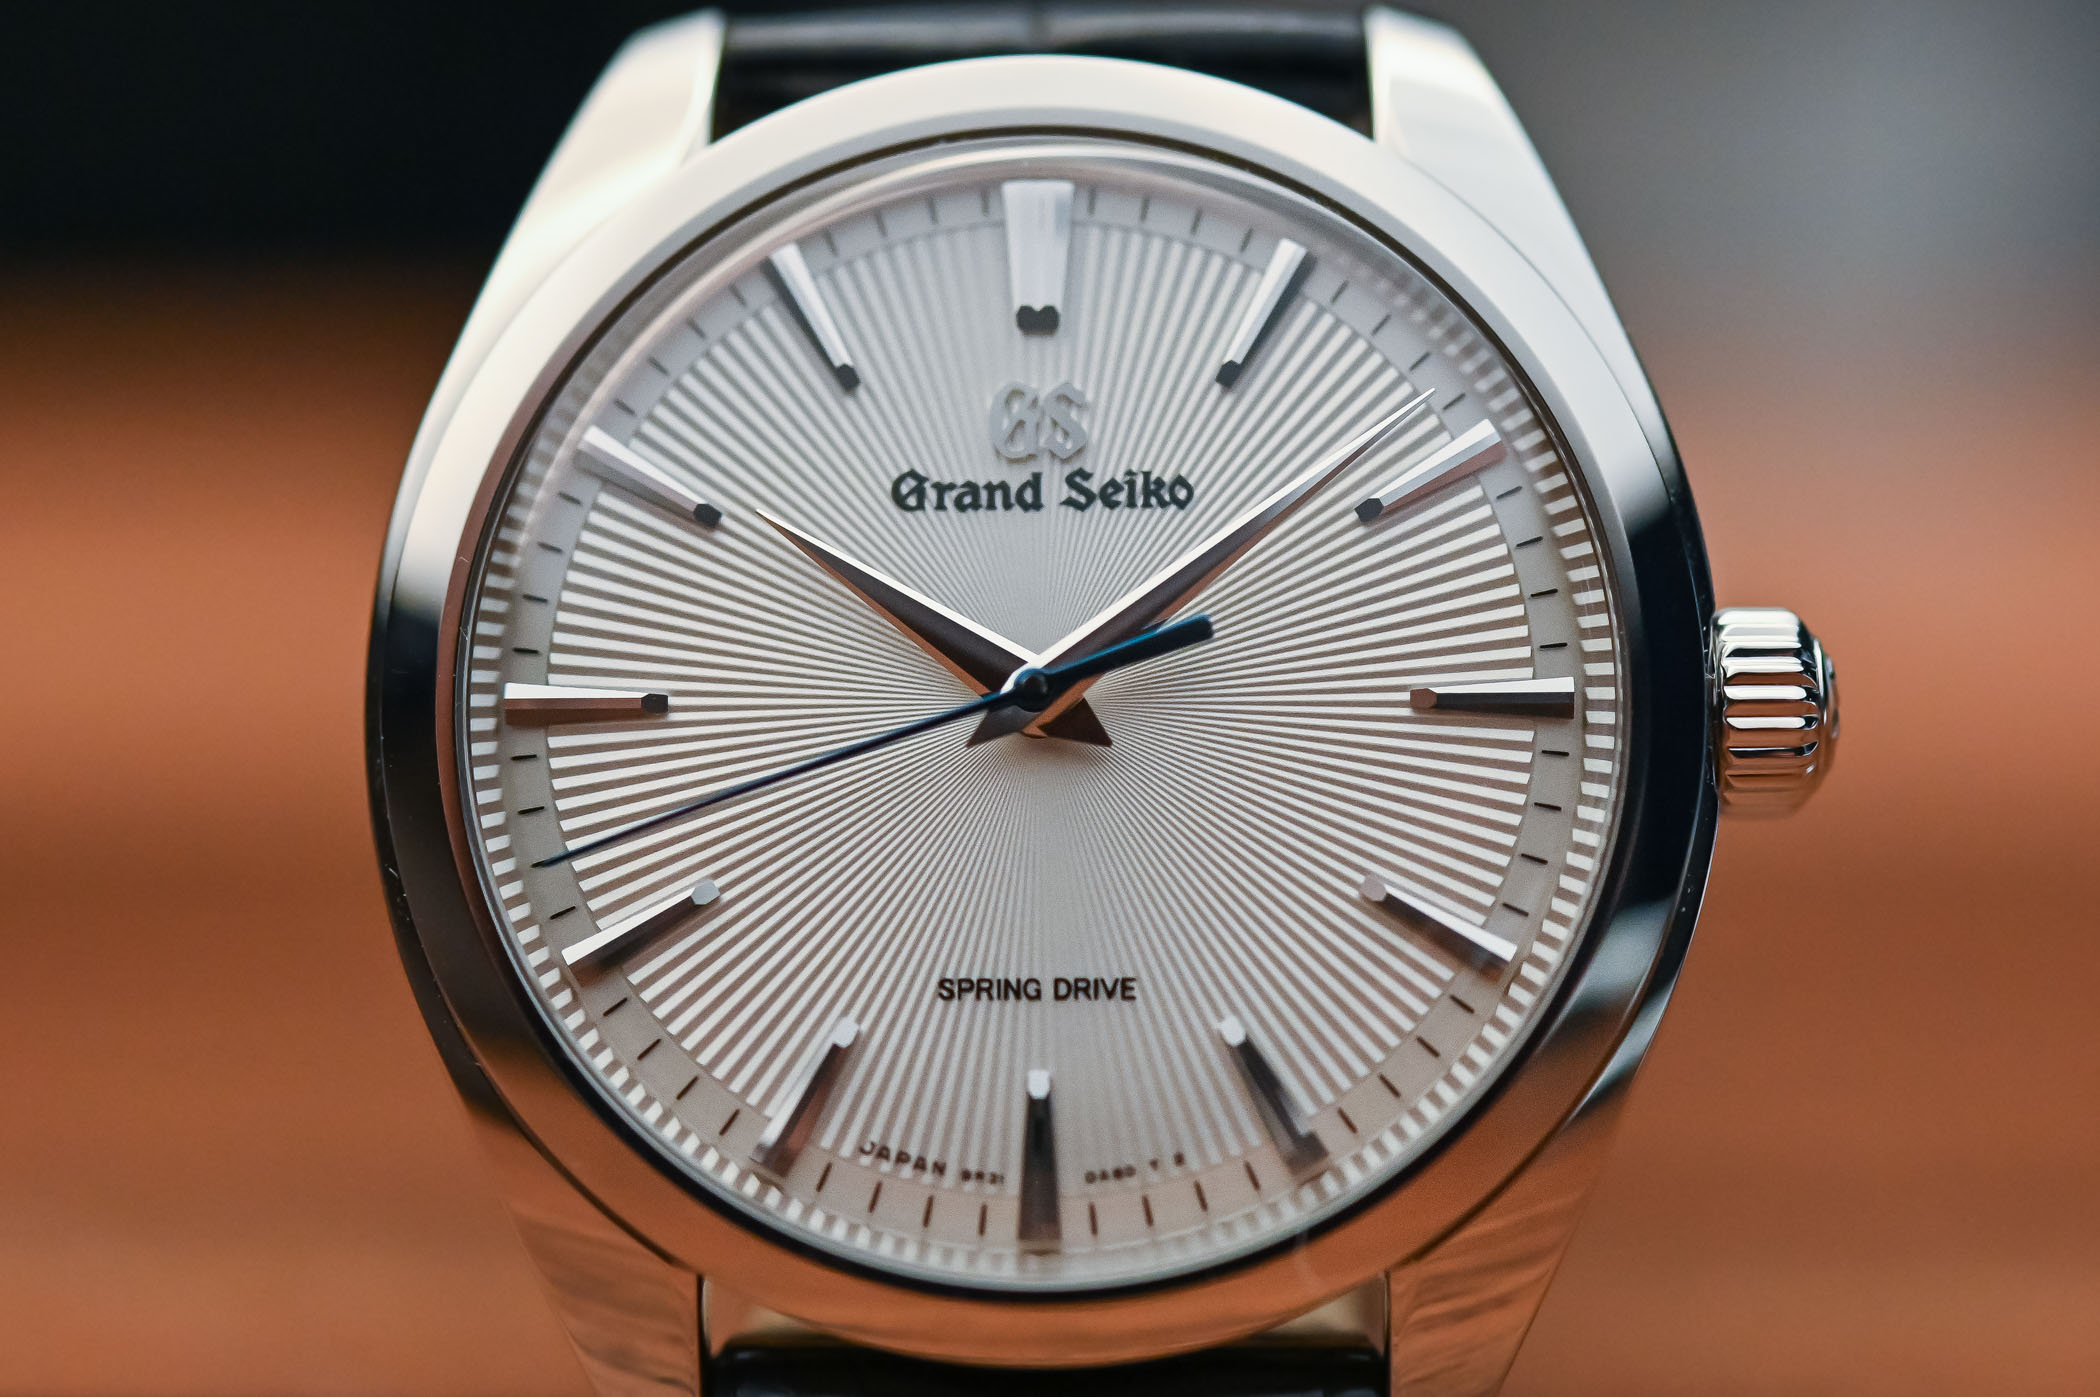 Grand Seiko Hand-Wound Spring Drive Collection - SBGY002 SBGY003 SBGZ002 SBGZ003 - 12